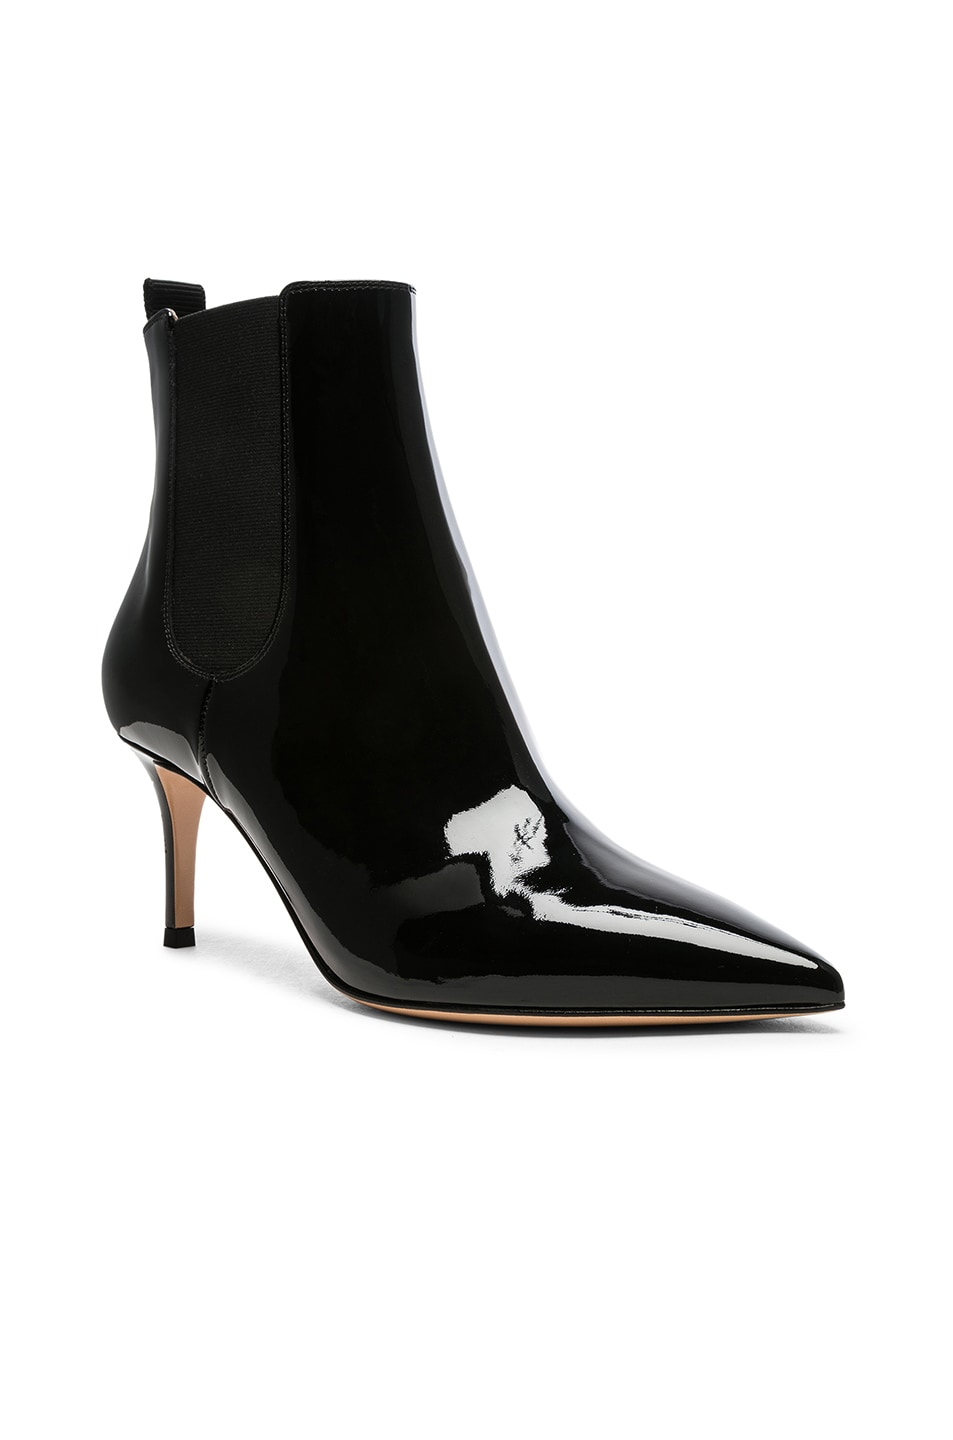 Image 2 of Gianvito Rossi Patent Leather Evan Stiletto Ankle Boots in Black